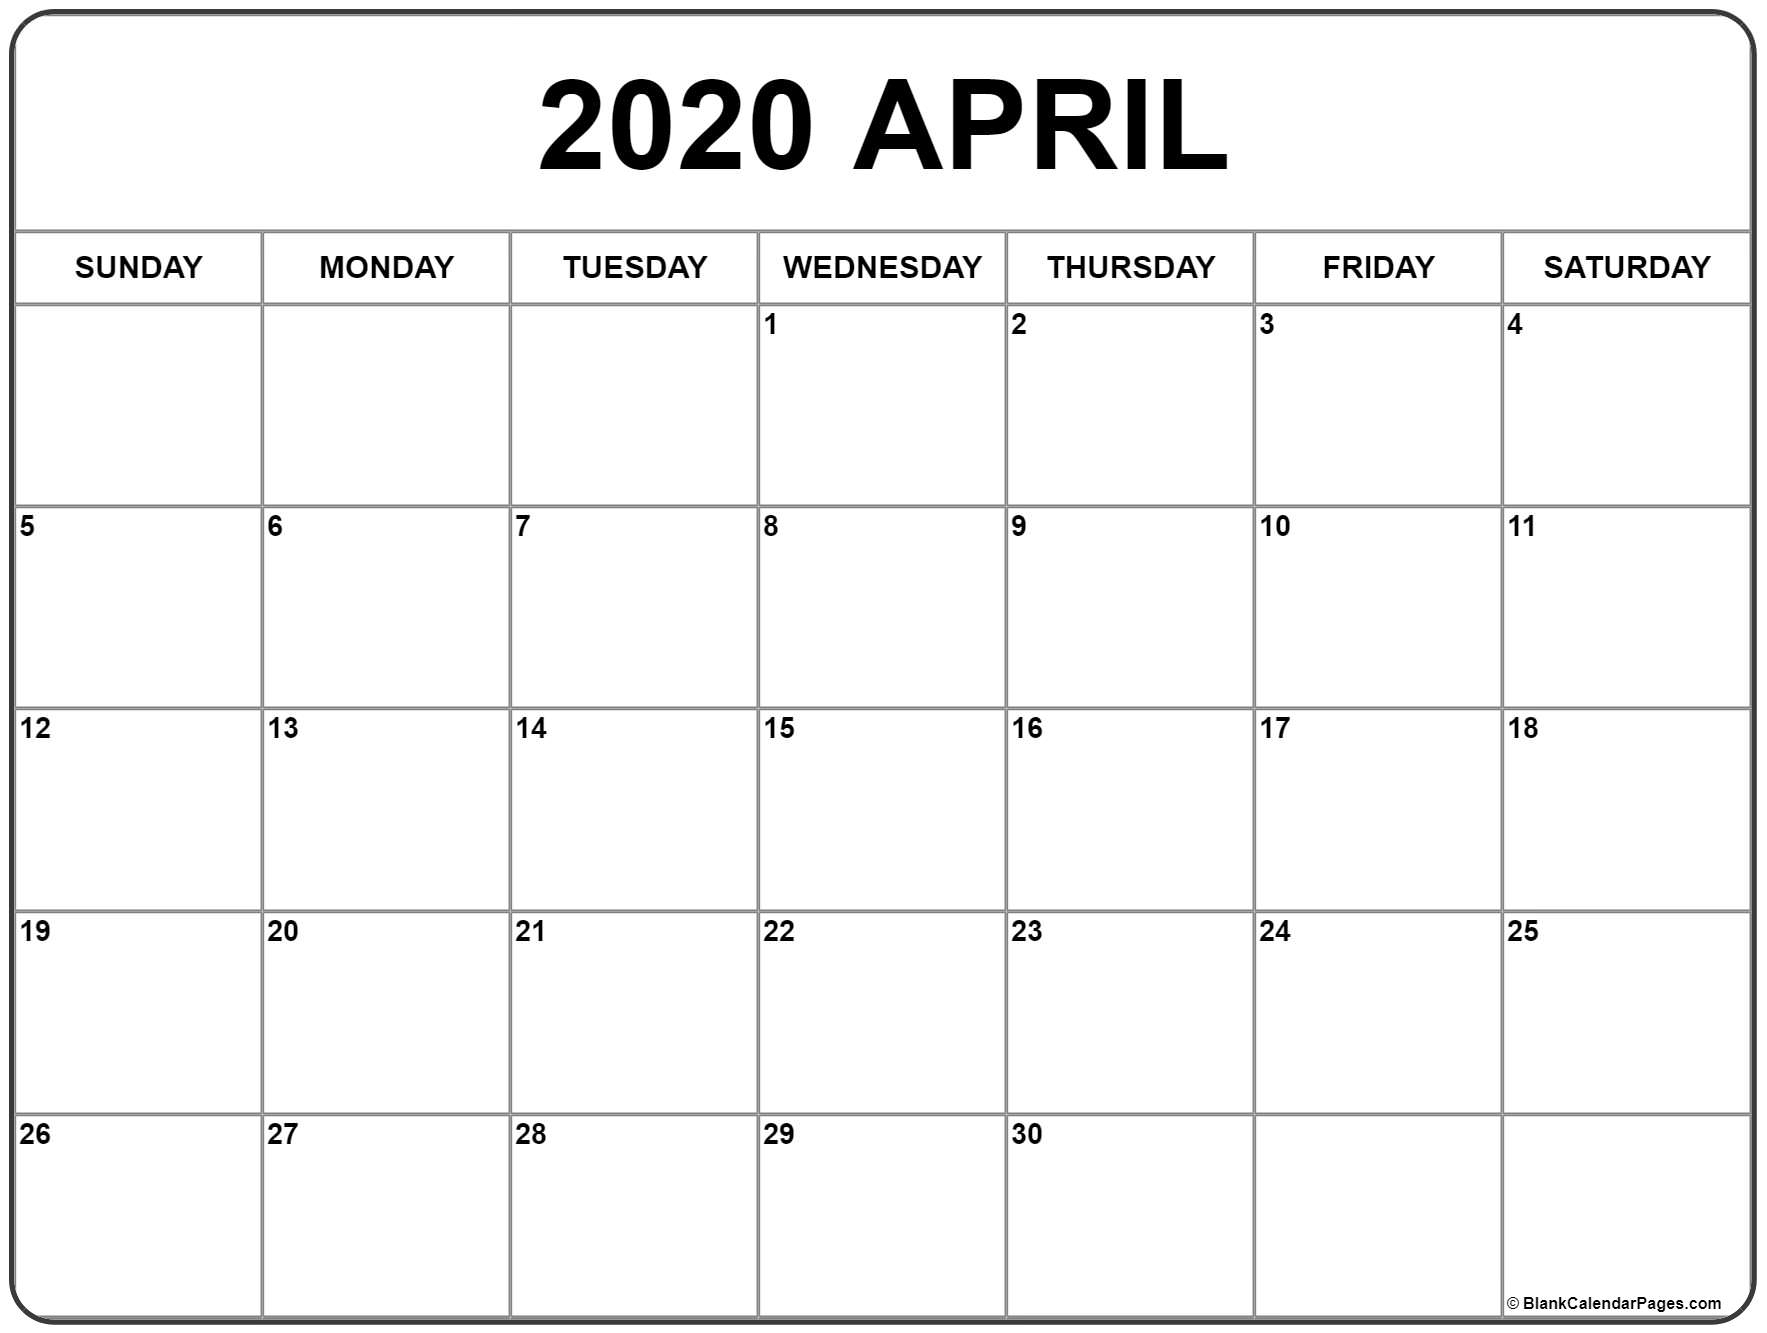 April 2020 Calendar | Free Printable Monthly Calendars intended for Free Printable Monthly 2020 Calendar